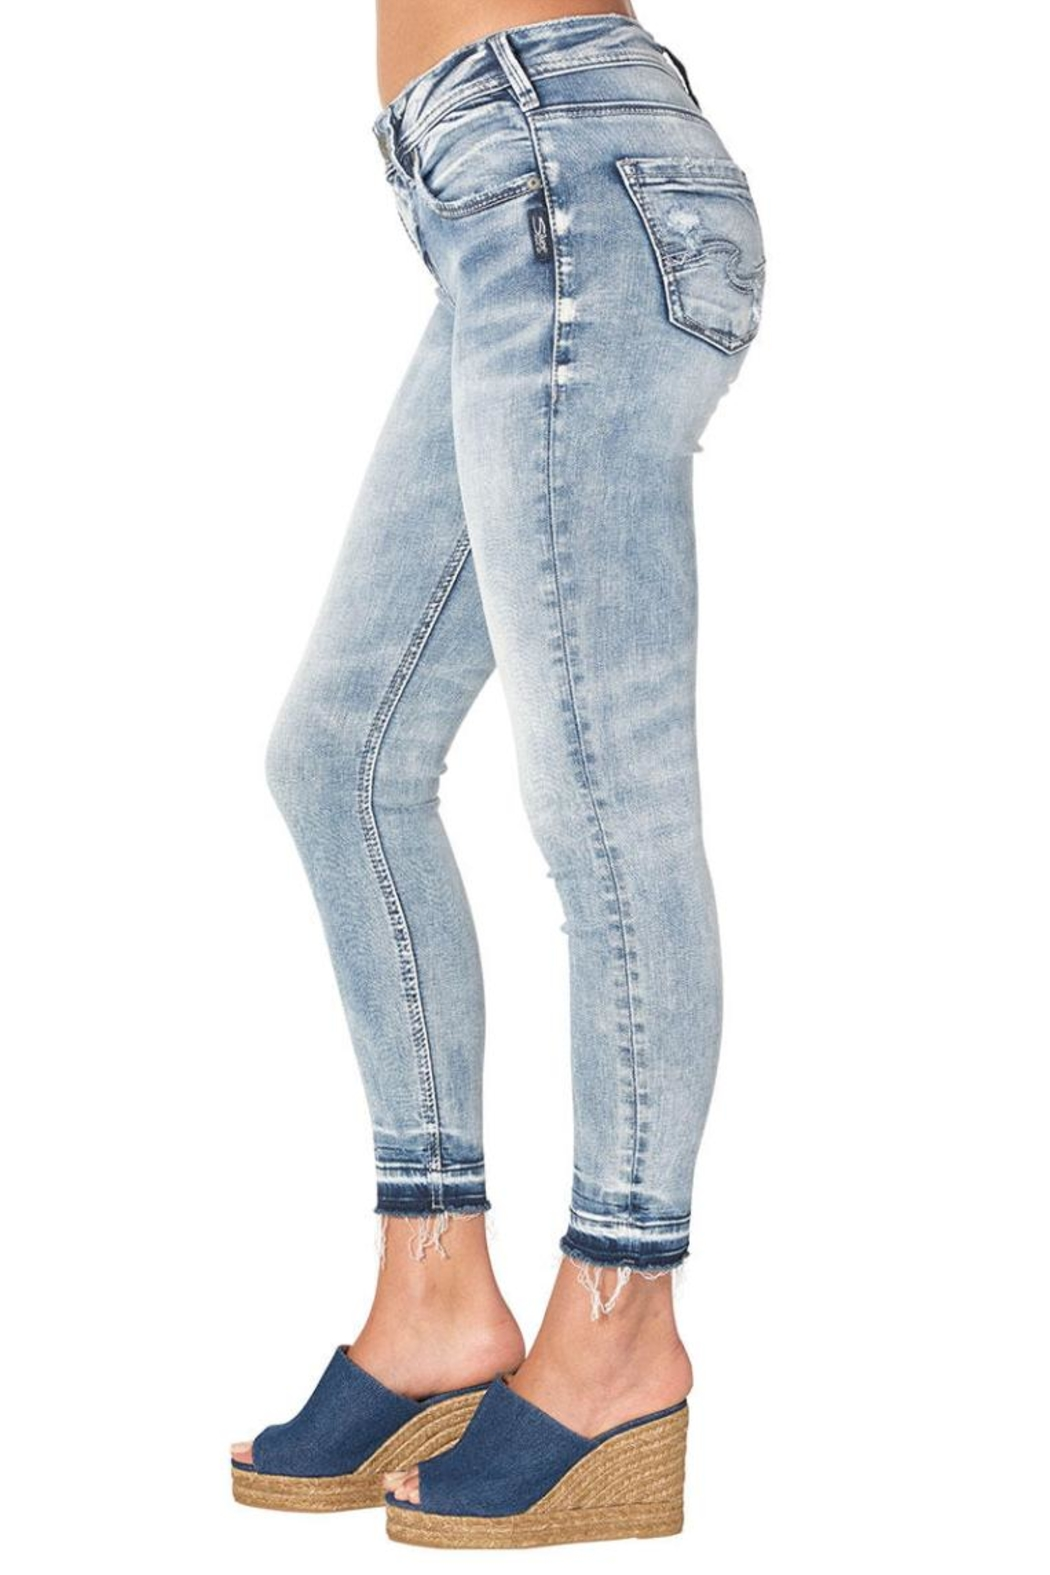 Silver Jeans Co. Avery Ankle Skinny - Side Cropped Image